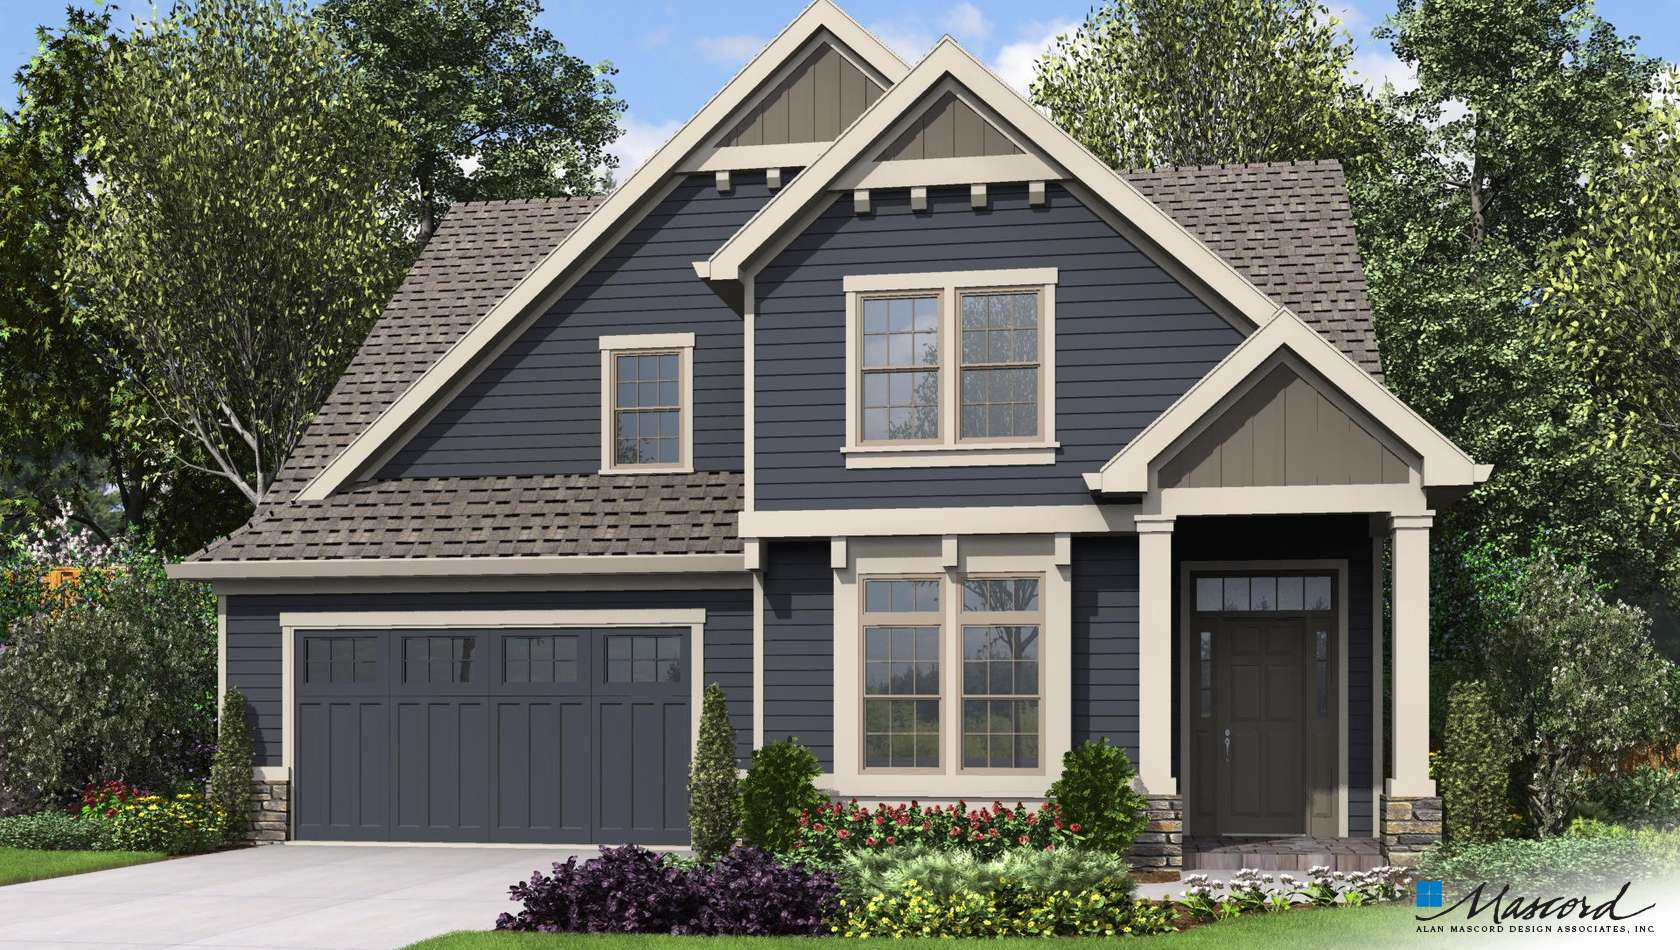 Main image for house plan 22215: The Sinise